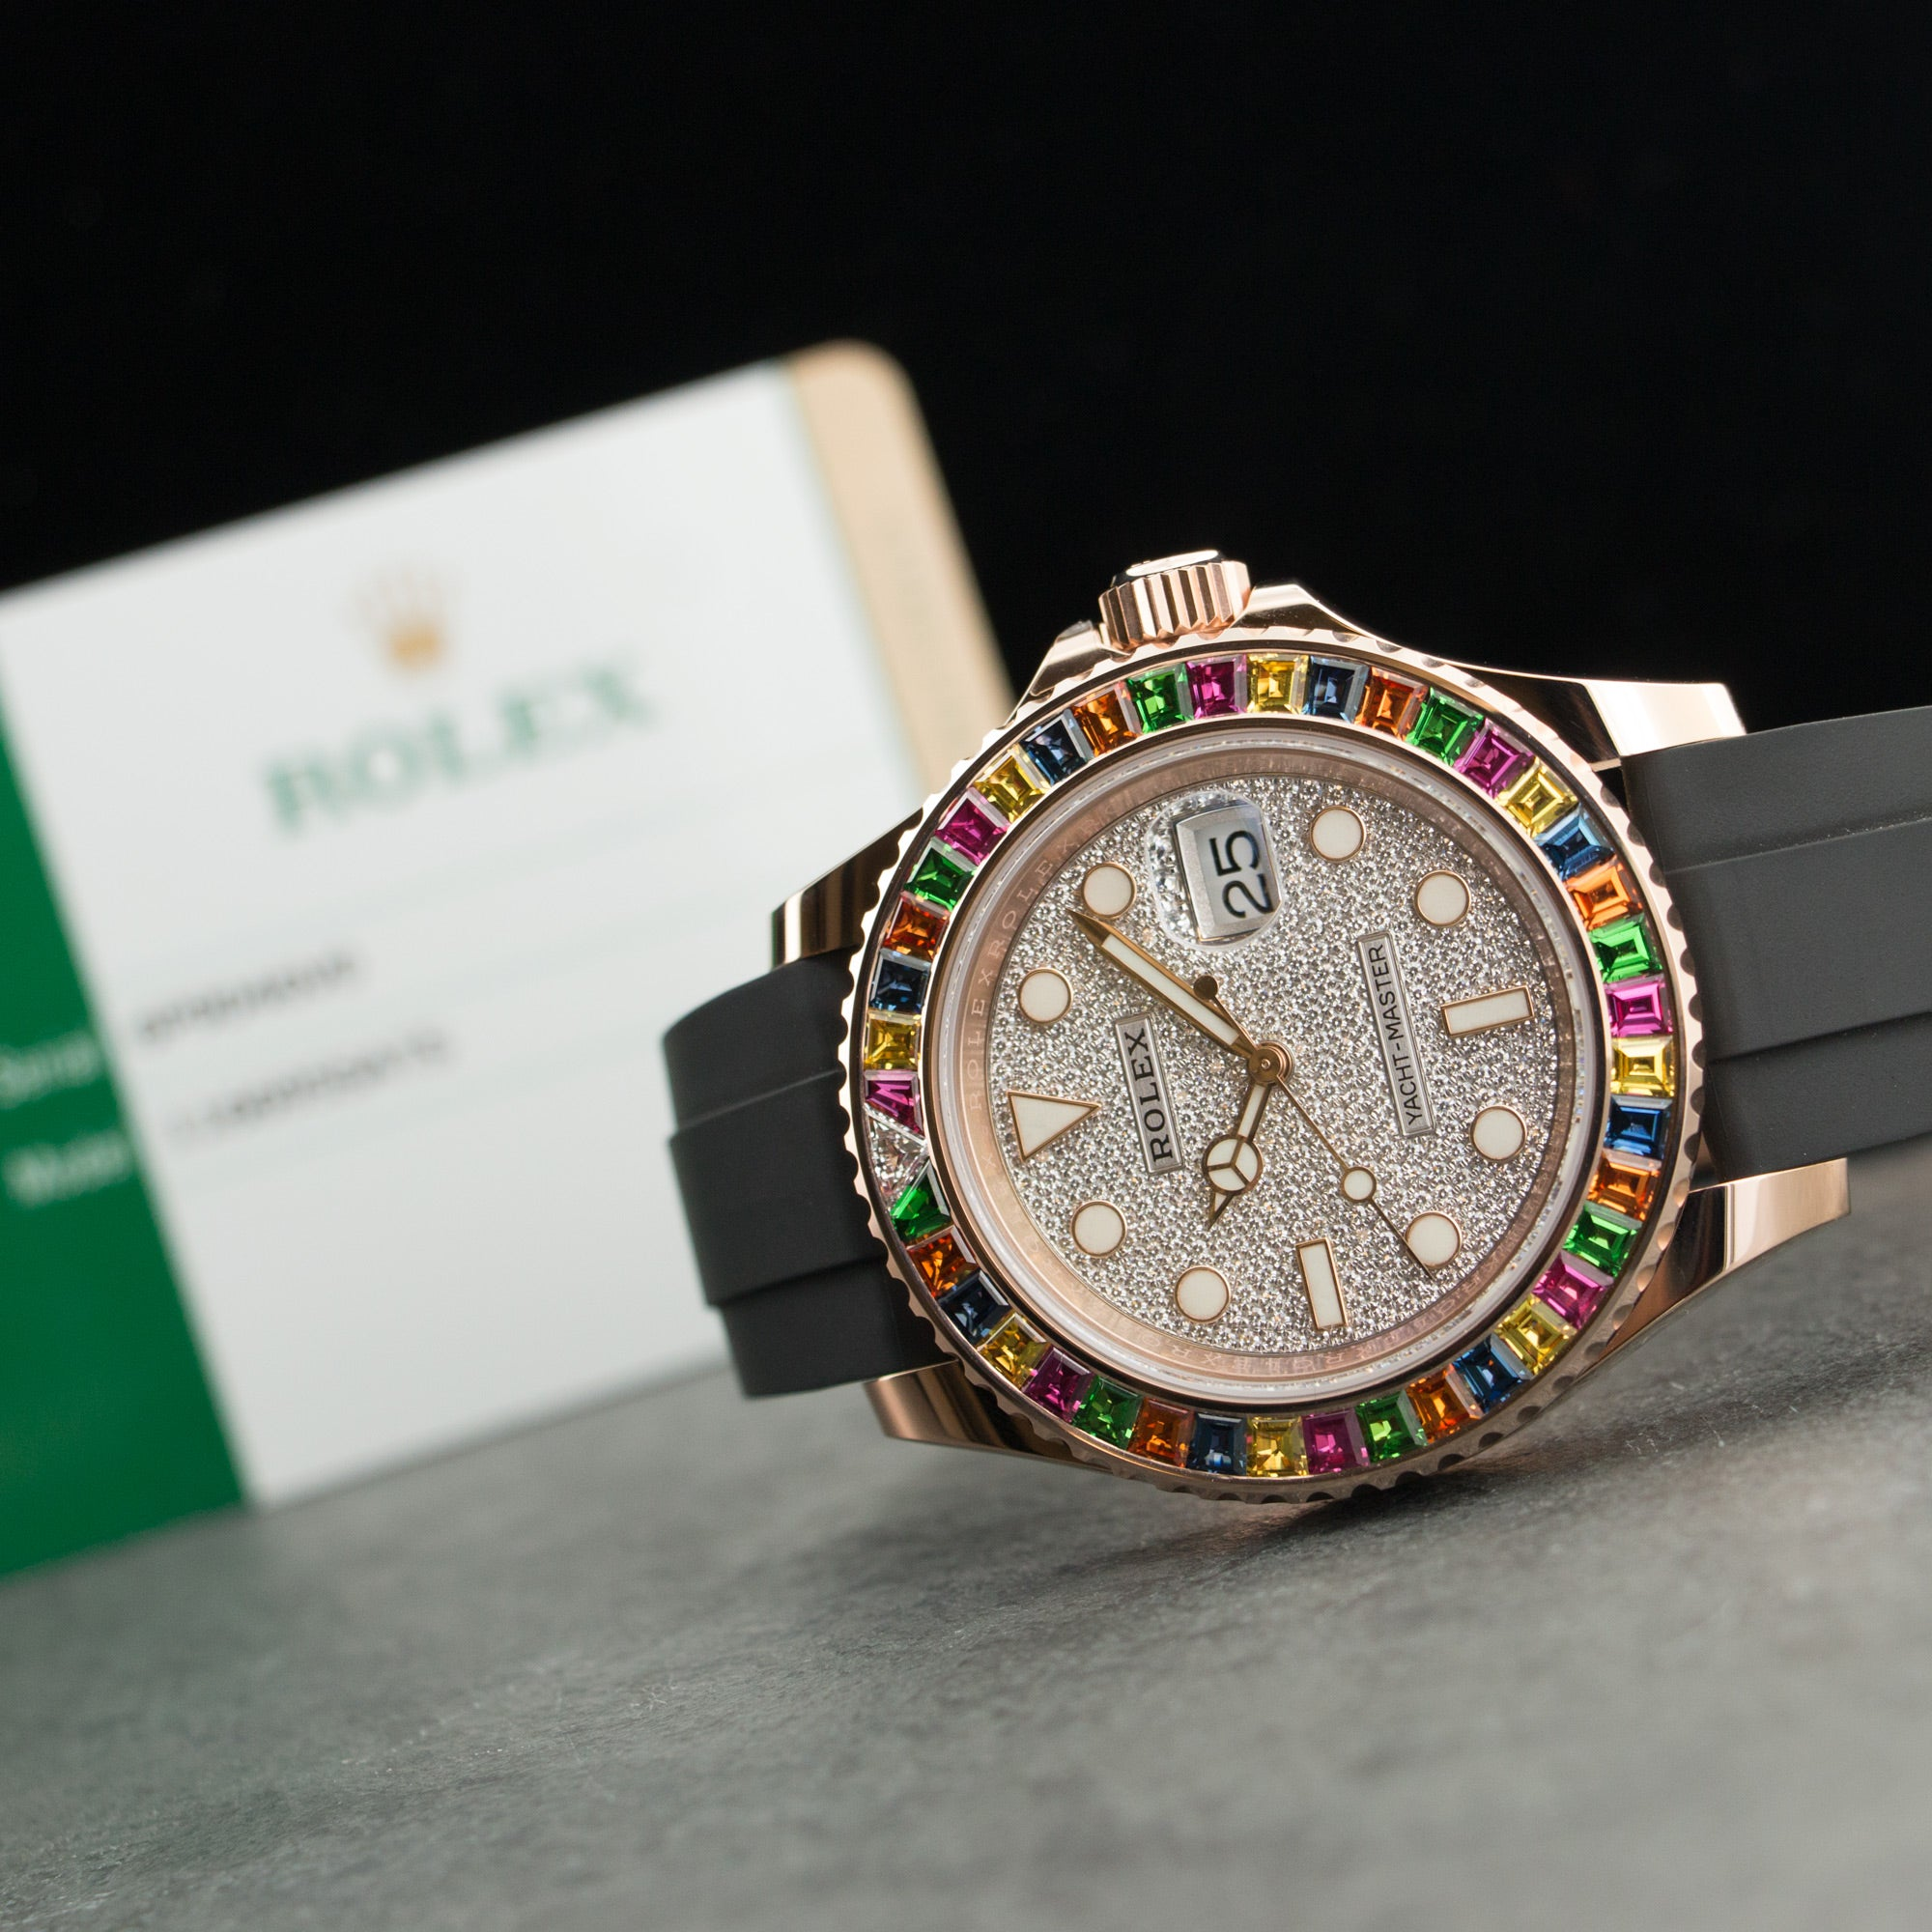 Rolex Yacht-Master 11669SATS 18k RG  Unworn Unisex 18k RG Pave Diamond 40mm Automatic Current Rubber Box, Manuals, Warranty Card